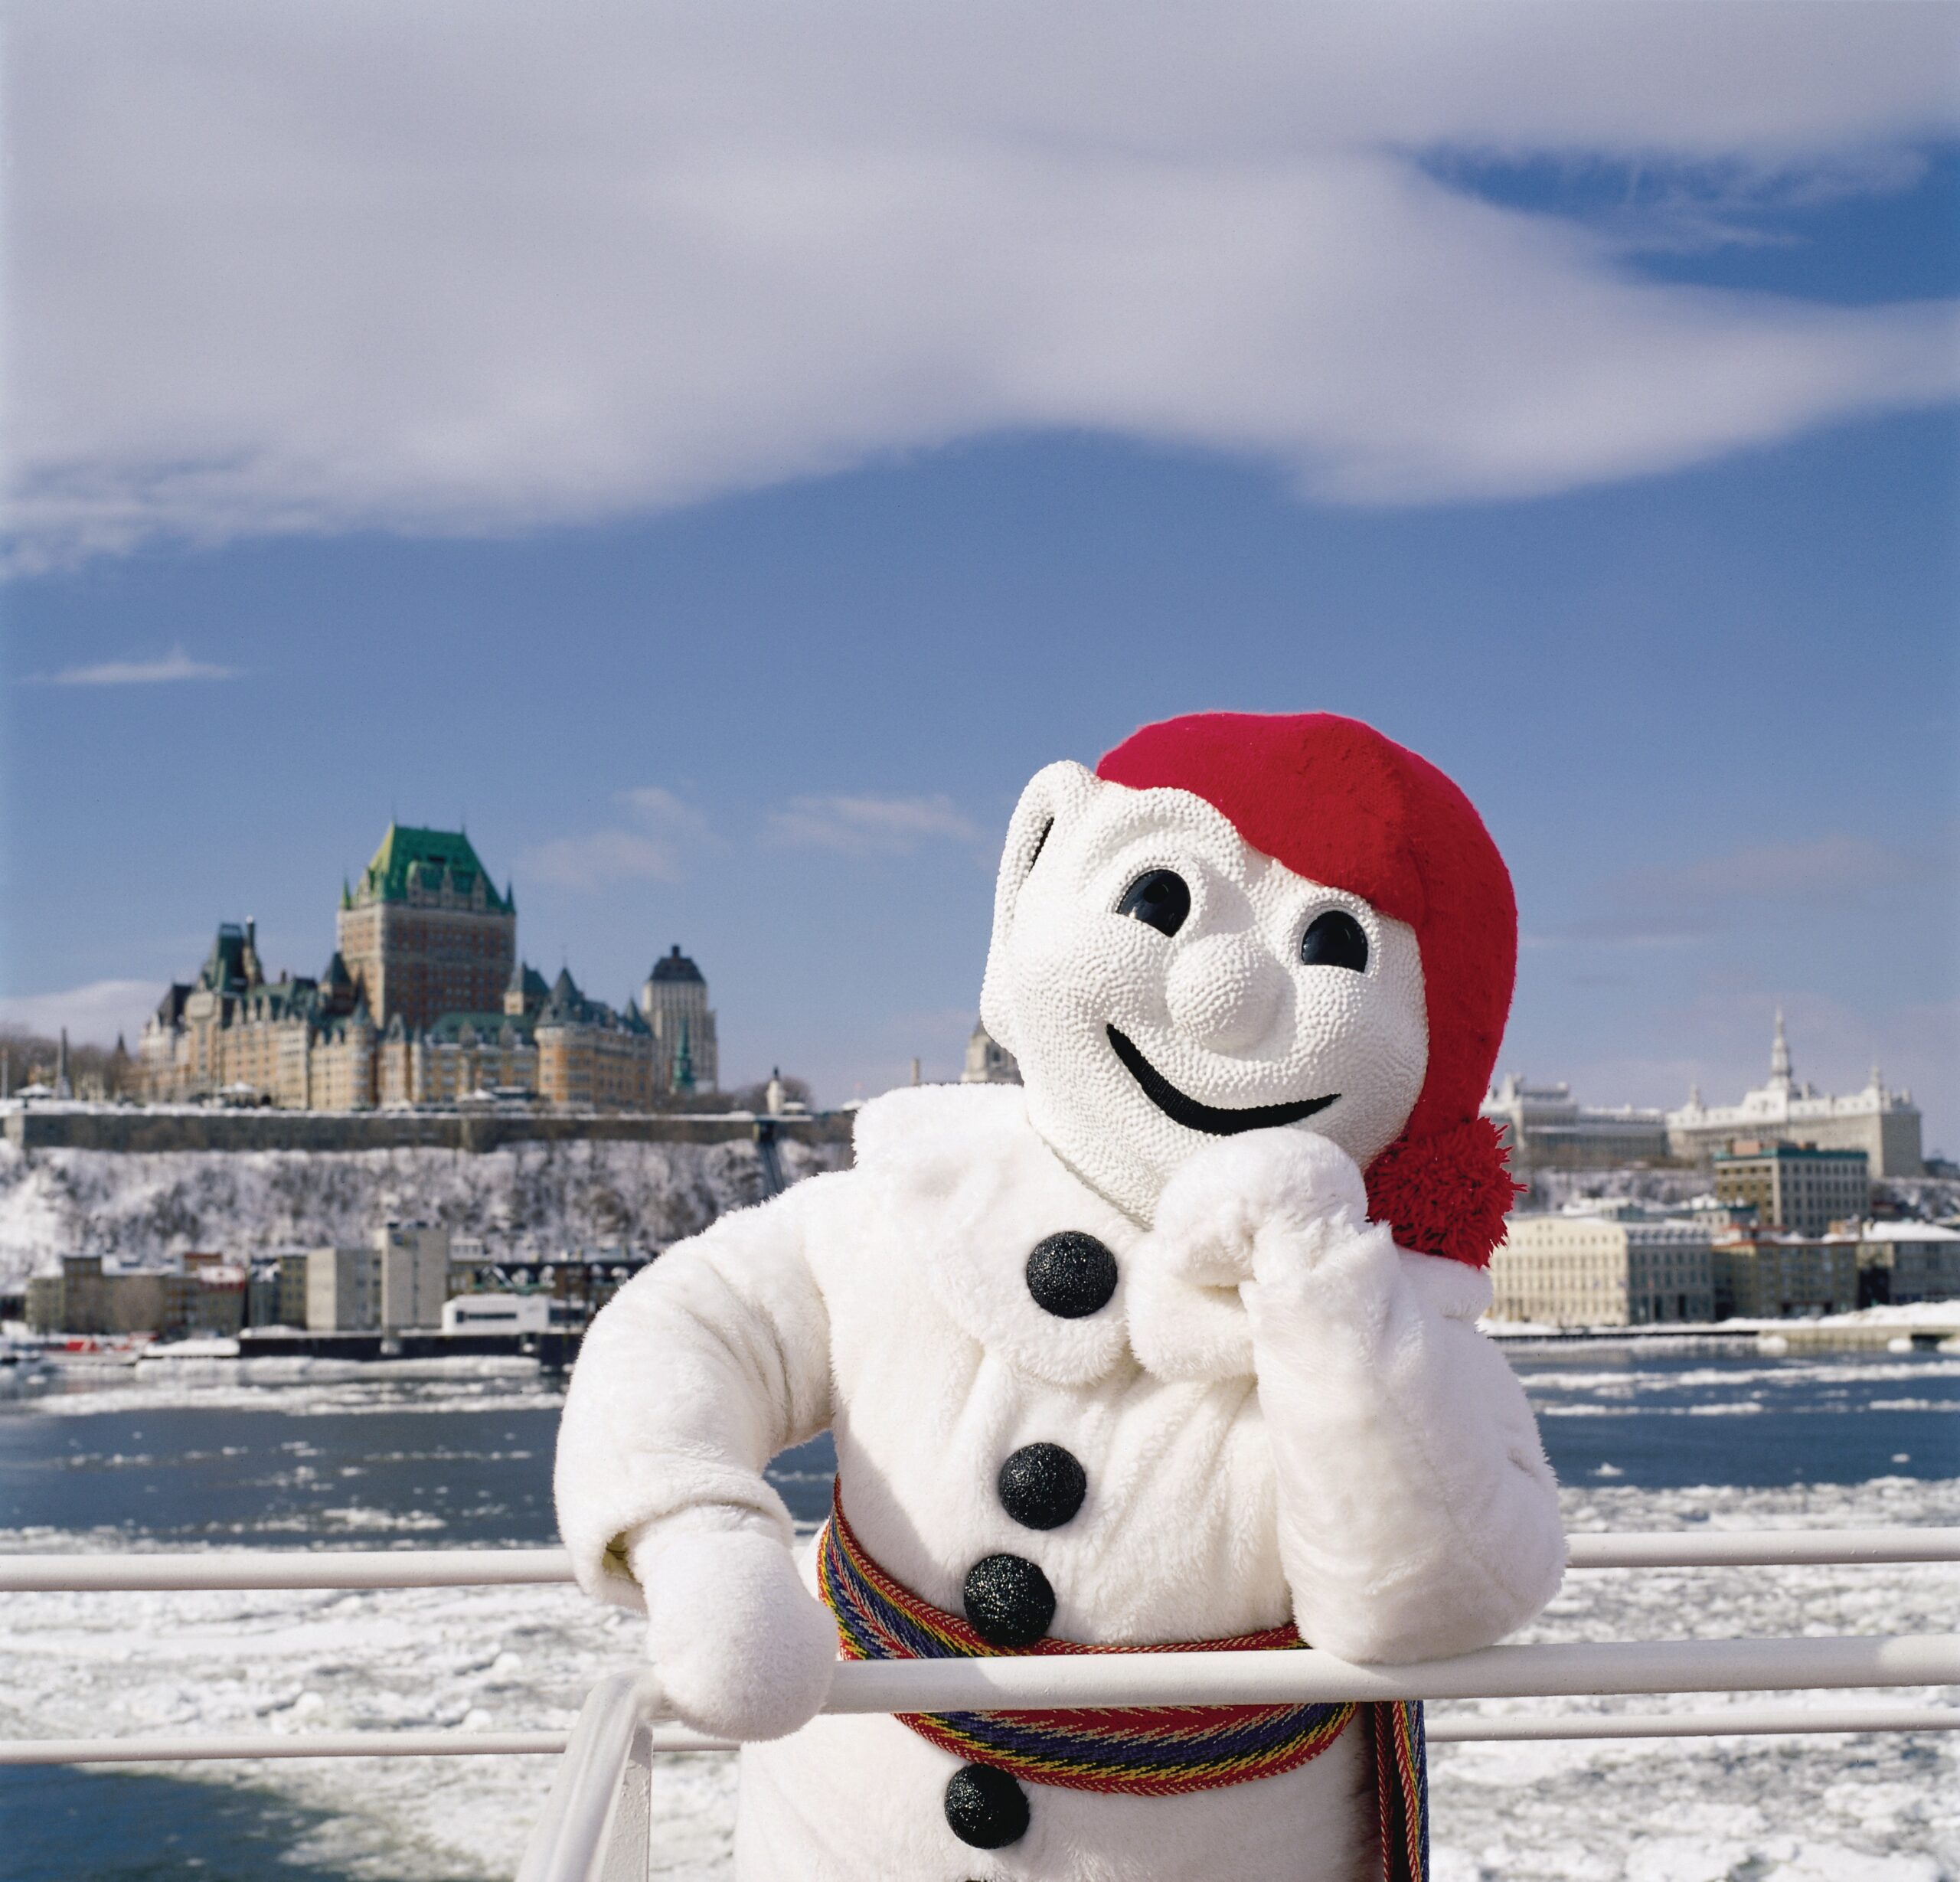 Bonhomme Carnaval posing for a picture